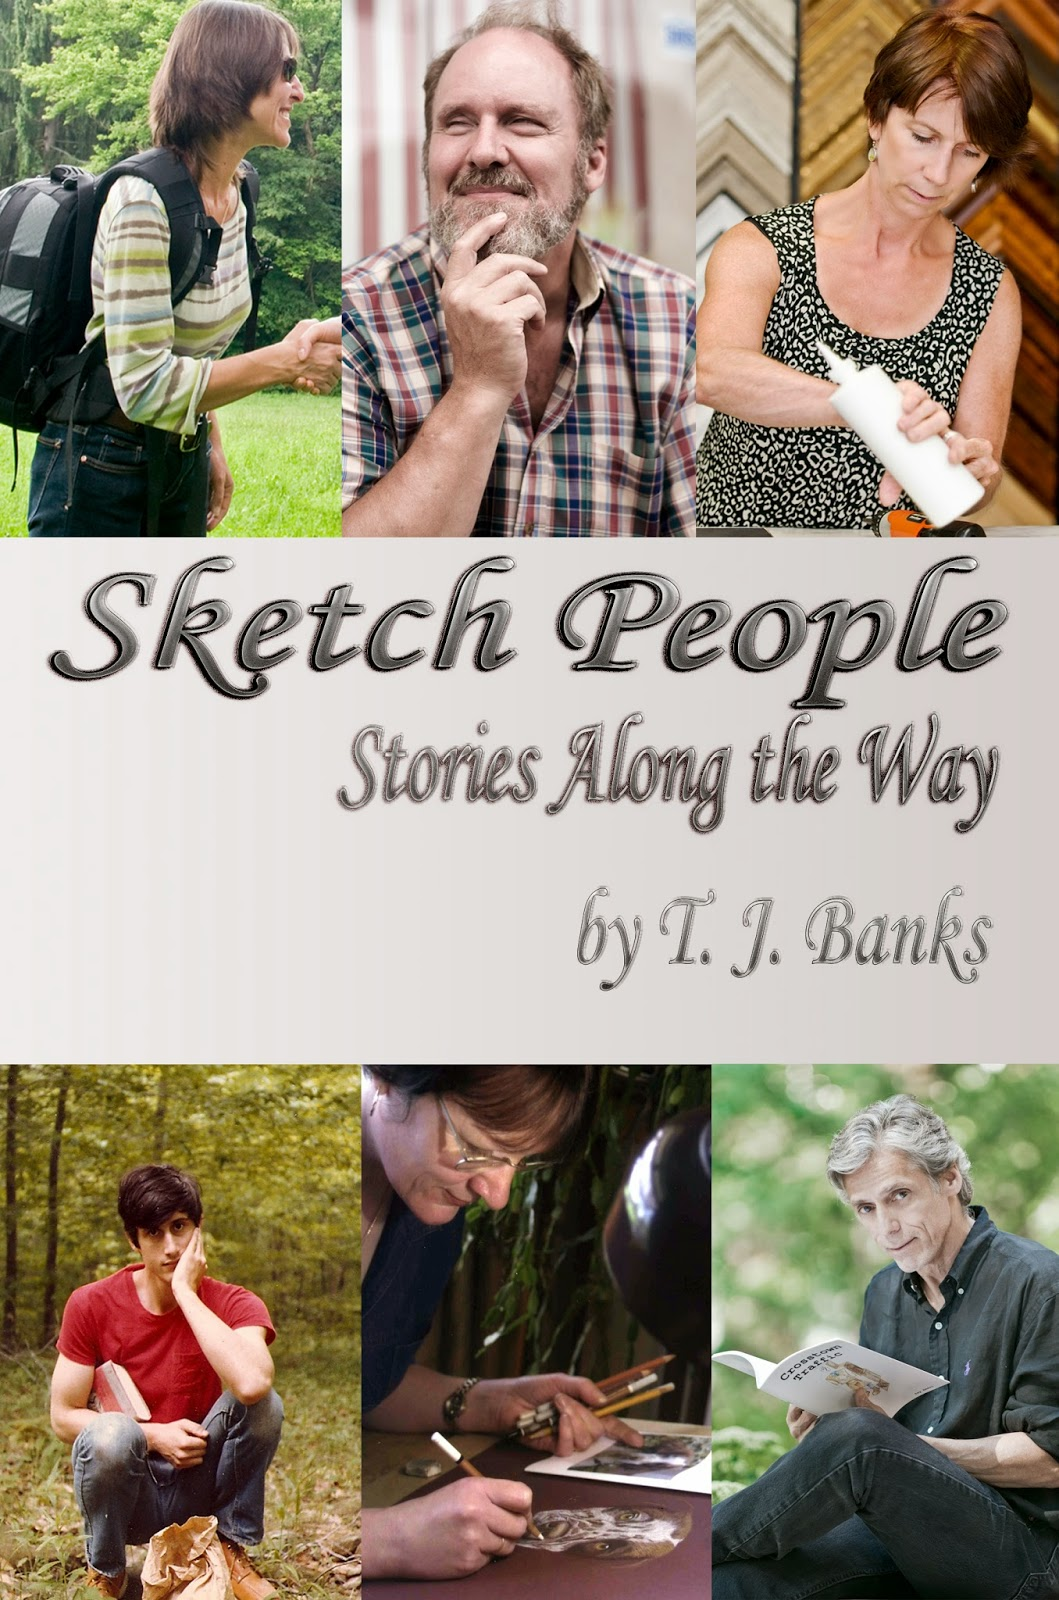 http://www.amazon.com/Sketch-People-Stories-Along-Way-ebook/dp/B0070CJFYI/ref=sr_1_1?ie=UTF8&qid=1395798521&sr=8-1&keywords=t.j.+banks+sketch+people